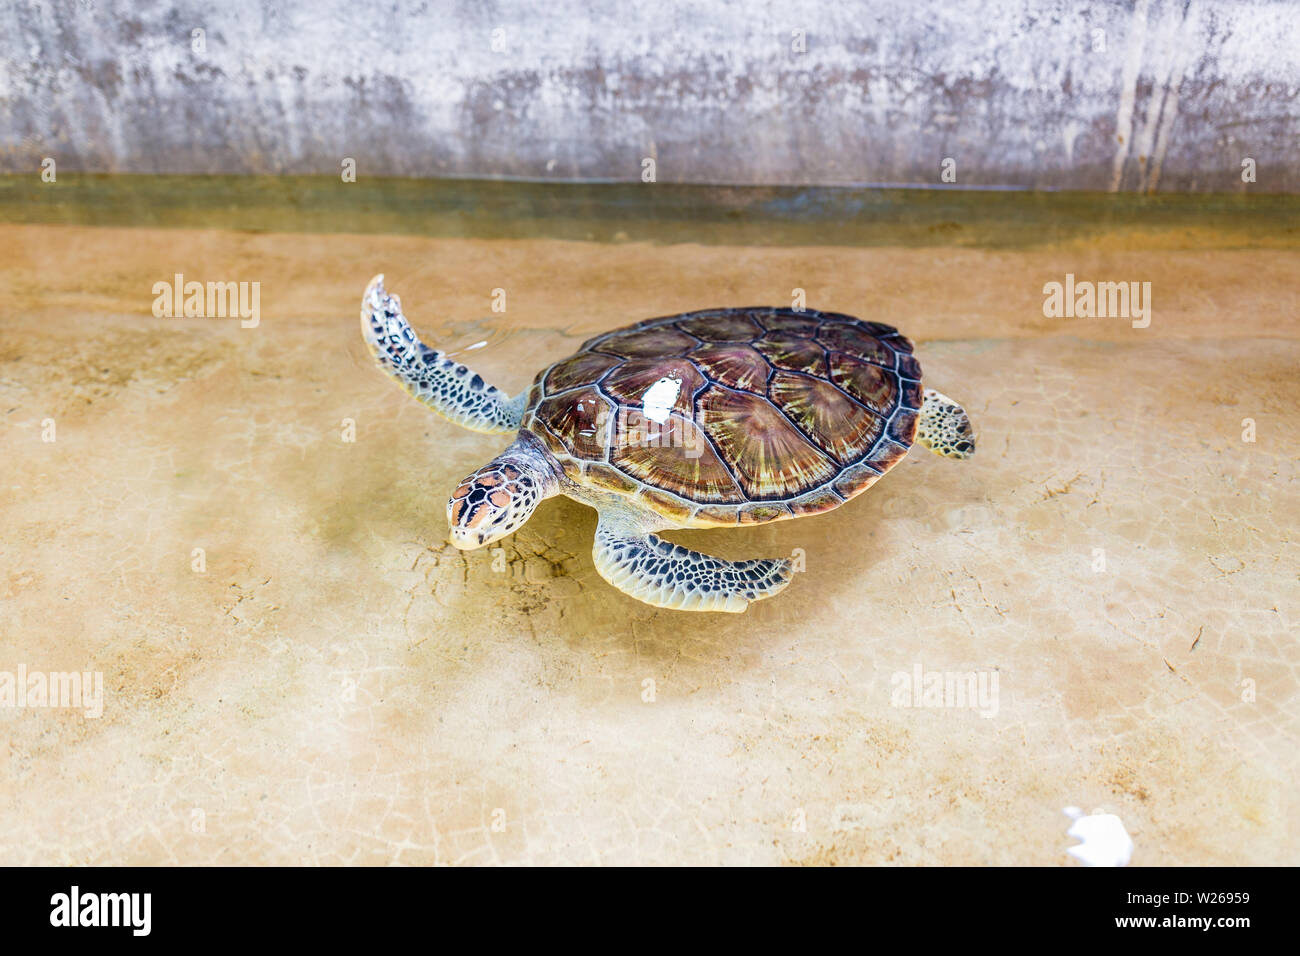 Sea turtle swims in the open pool. Turtle is brown color. Rehabilitation Center to restore the number of turtles, Thailand - Stock Image